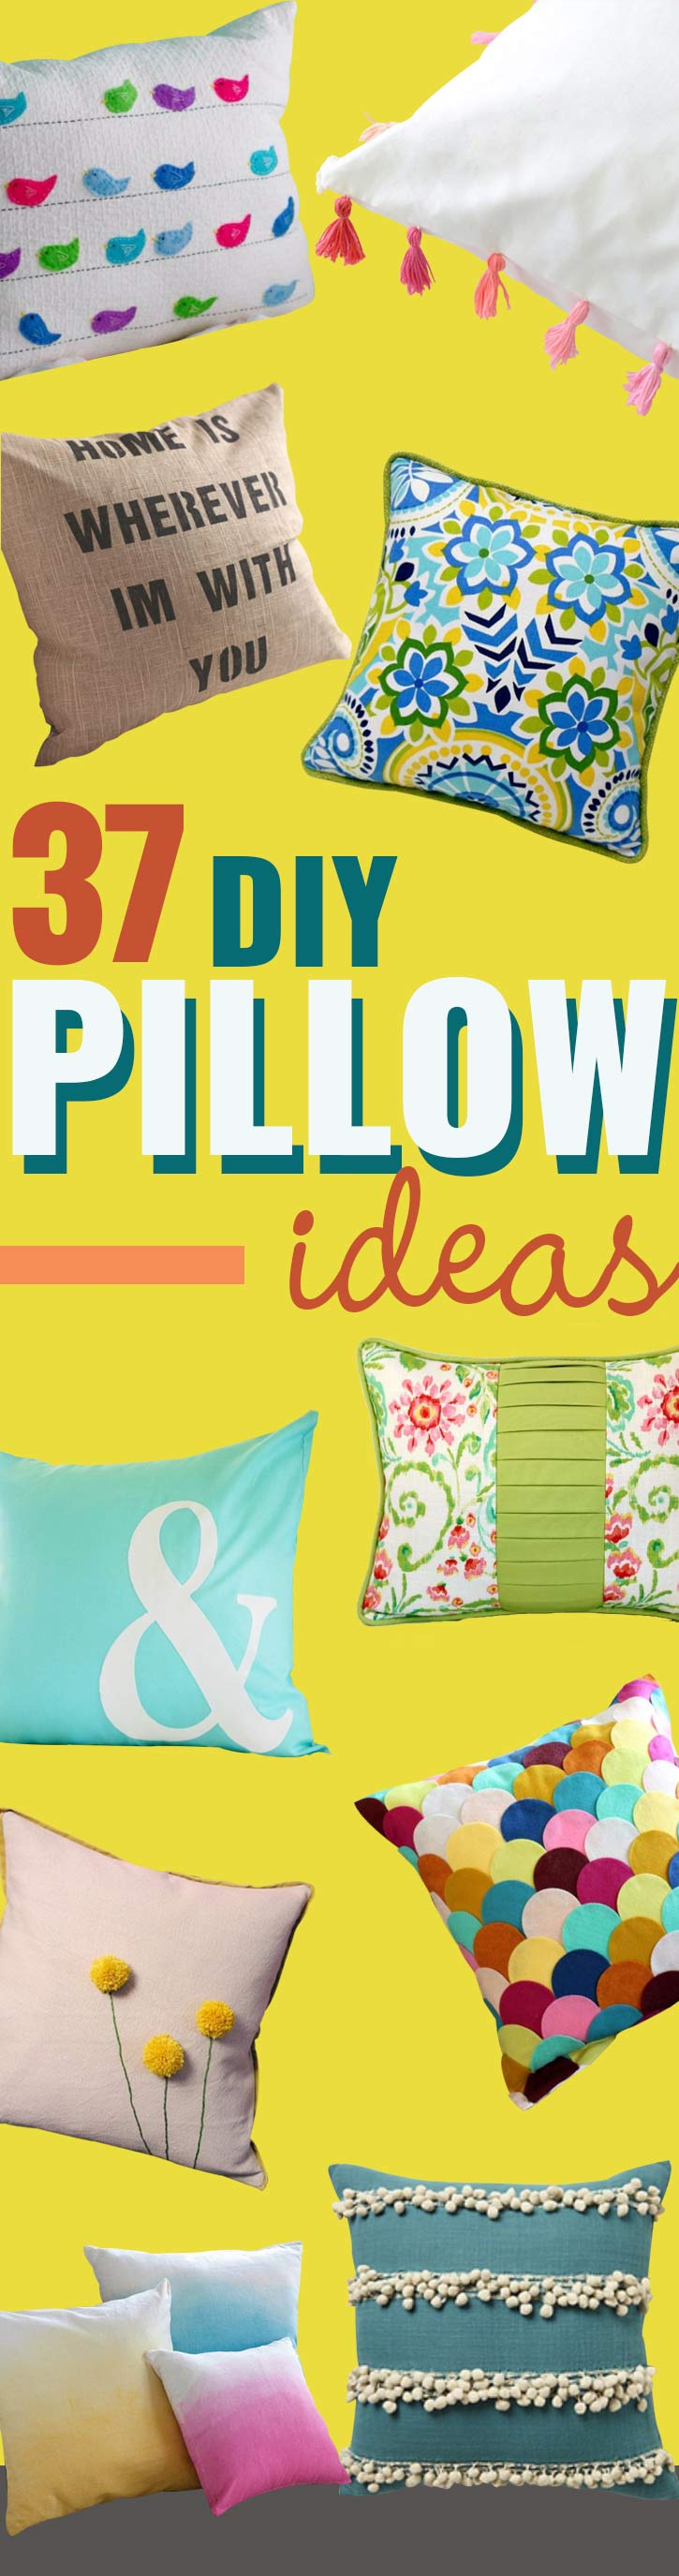 37 DIY Pillows That Could Upgrade Your Decor In Minutes